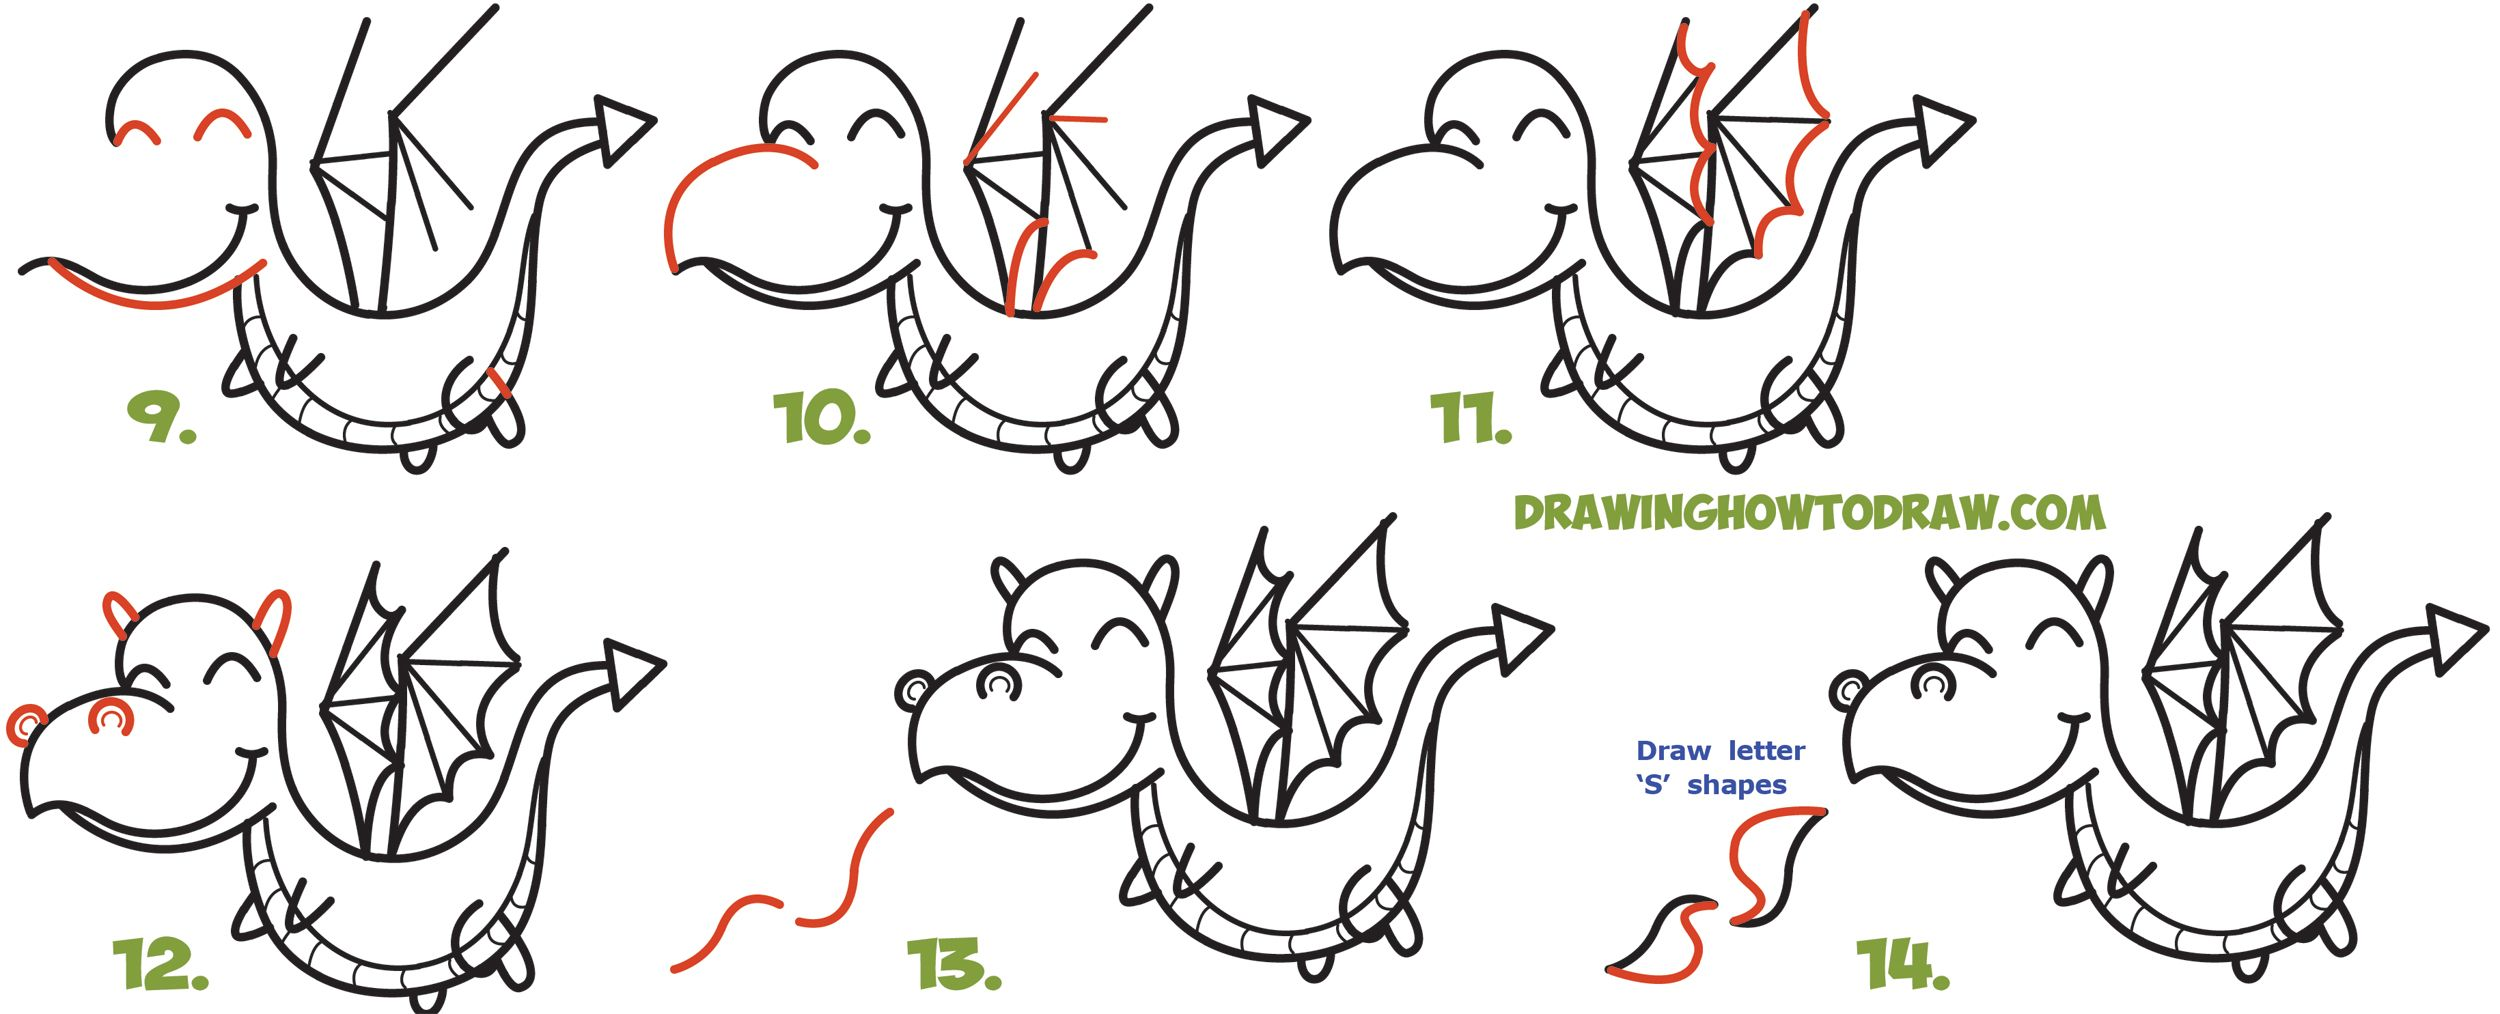 a28d021099455 How to Draw a Cute Kawaii / Chibi Dragon Shooting Fire with Easy Step by Step  Drawing Tutorial for Kids and Beginners